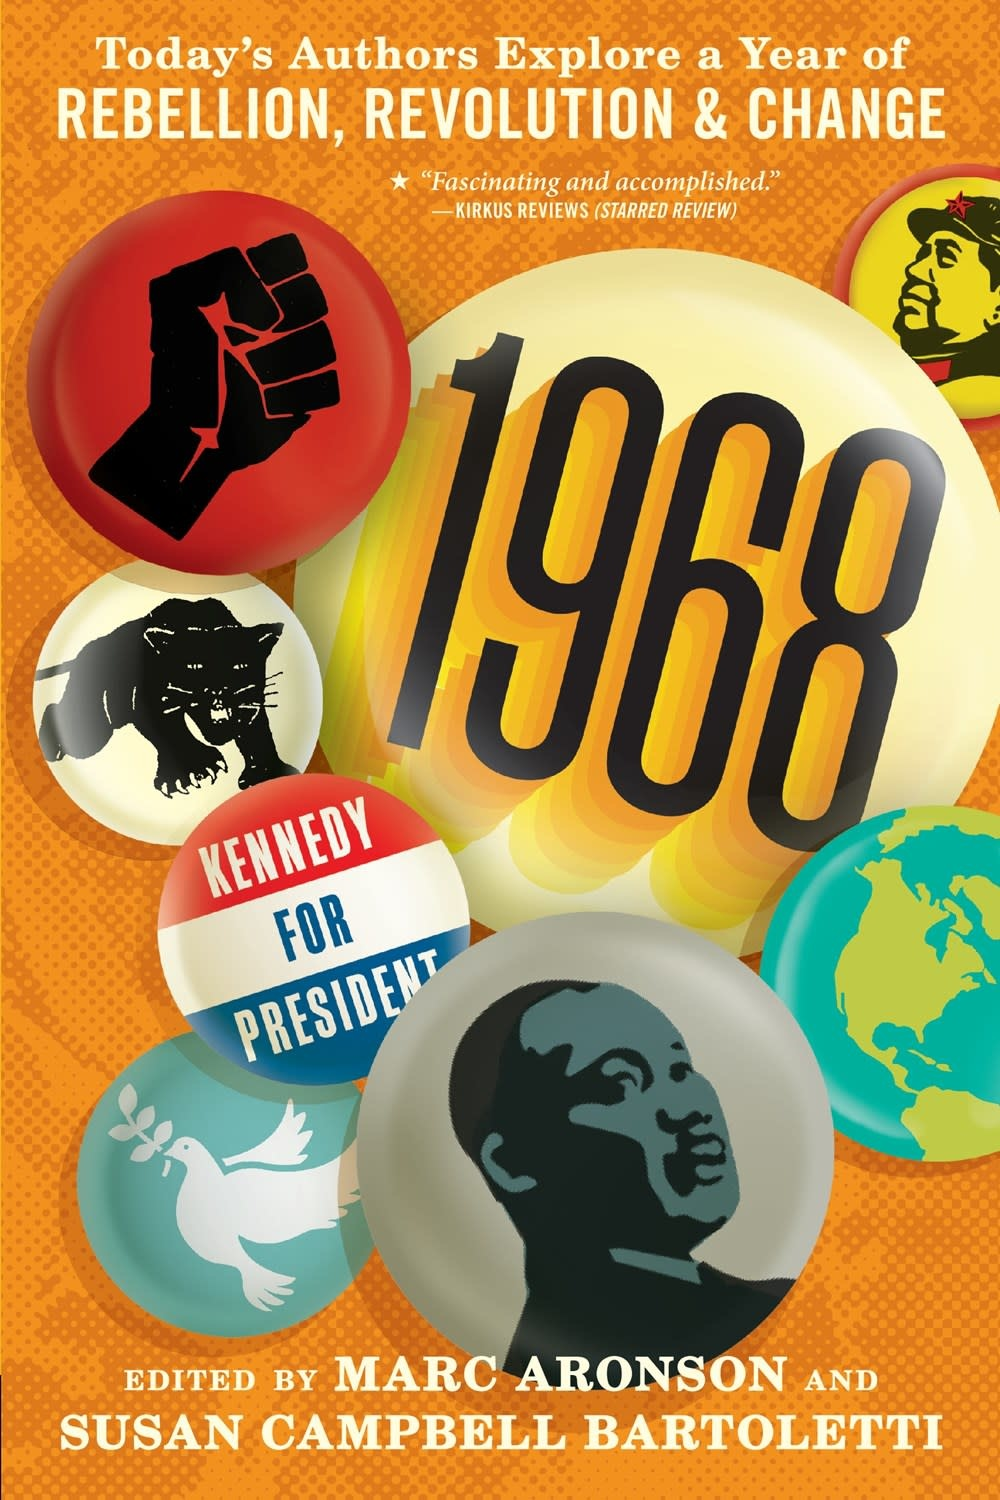 Candlewick 1968: Today's Authors Explore a Year of Rebellion, Revolution, and Change